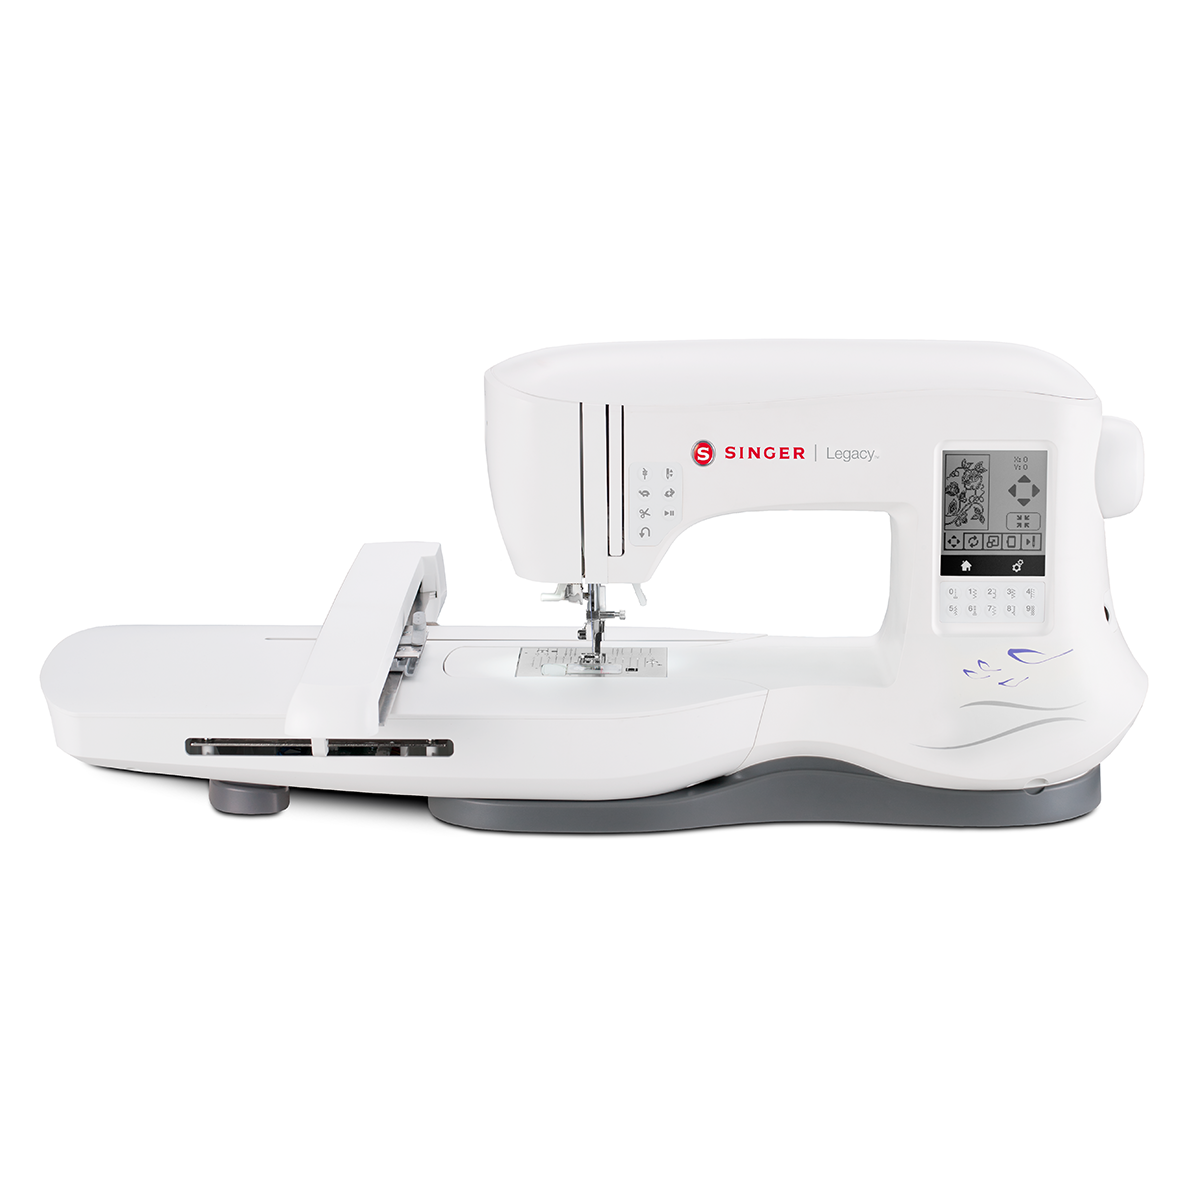 Singer SE300 Legacy with Embroidery Unit